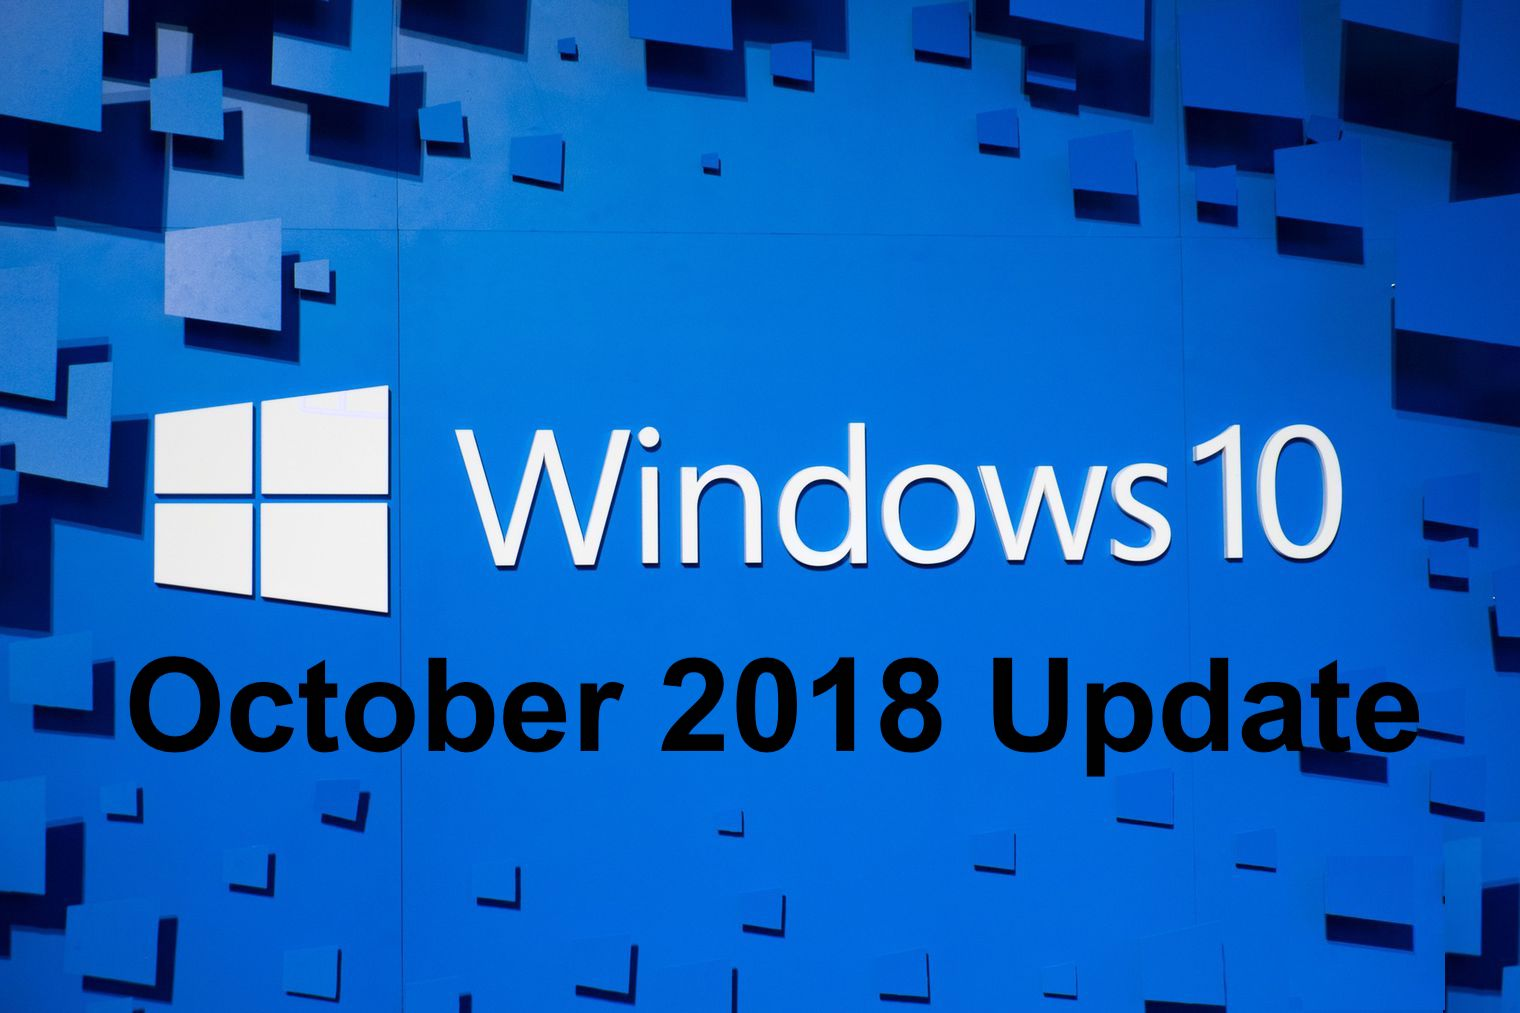 windows 10 pro october 2018 update iso